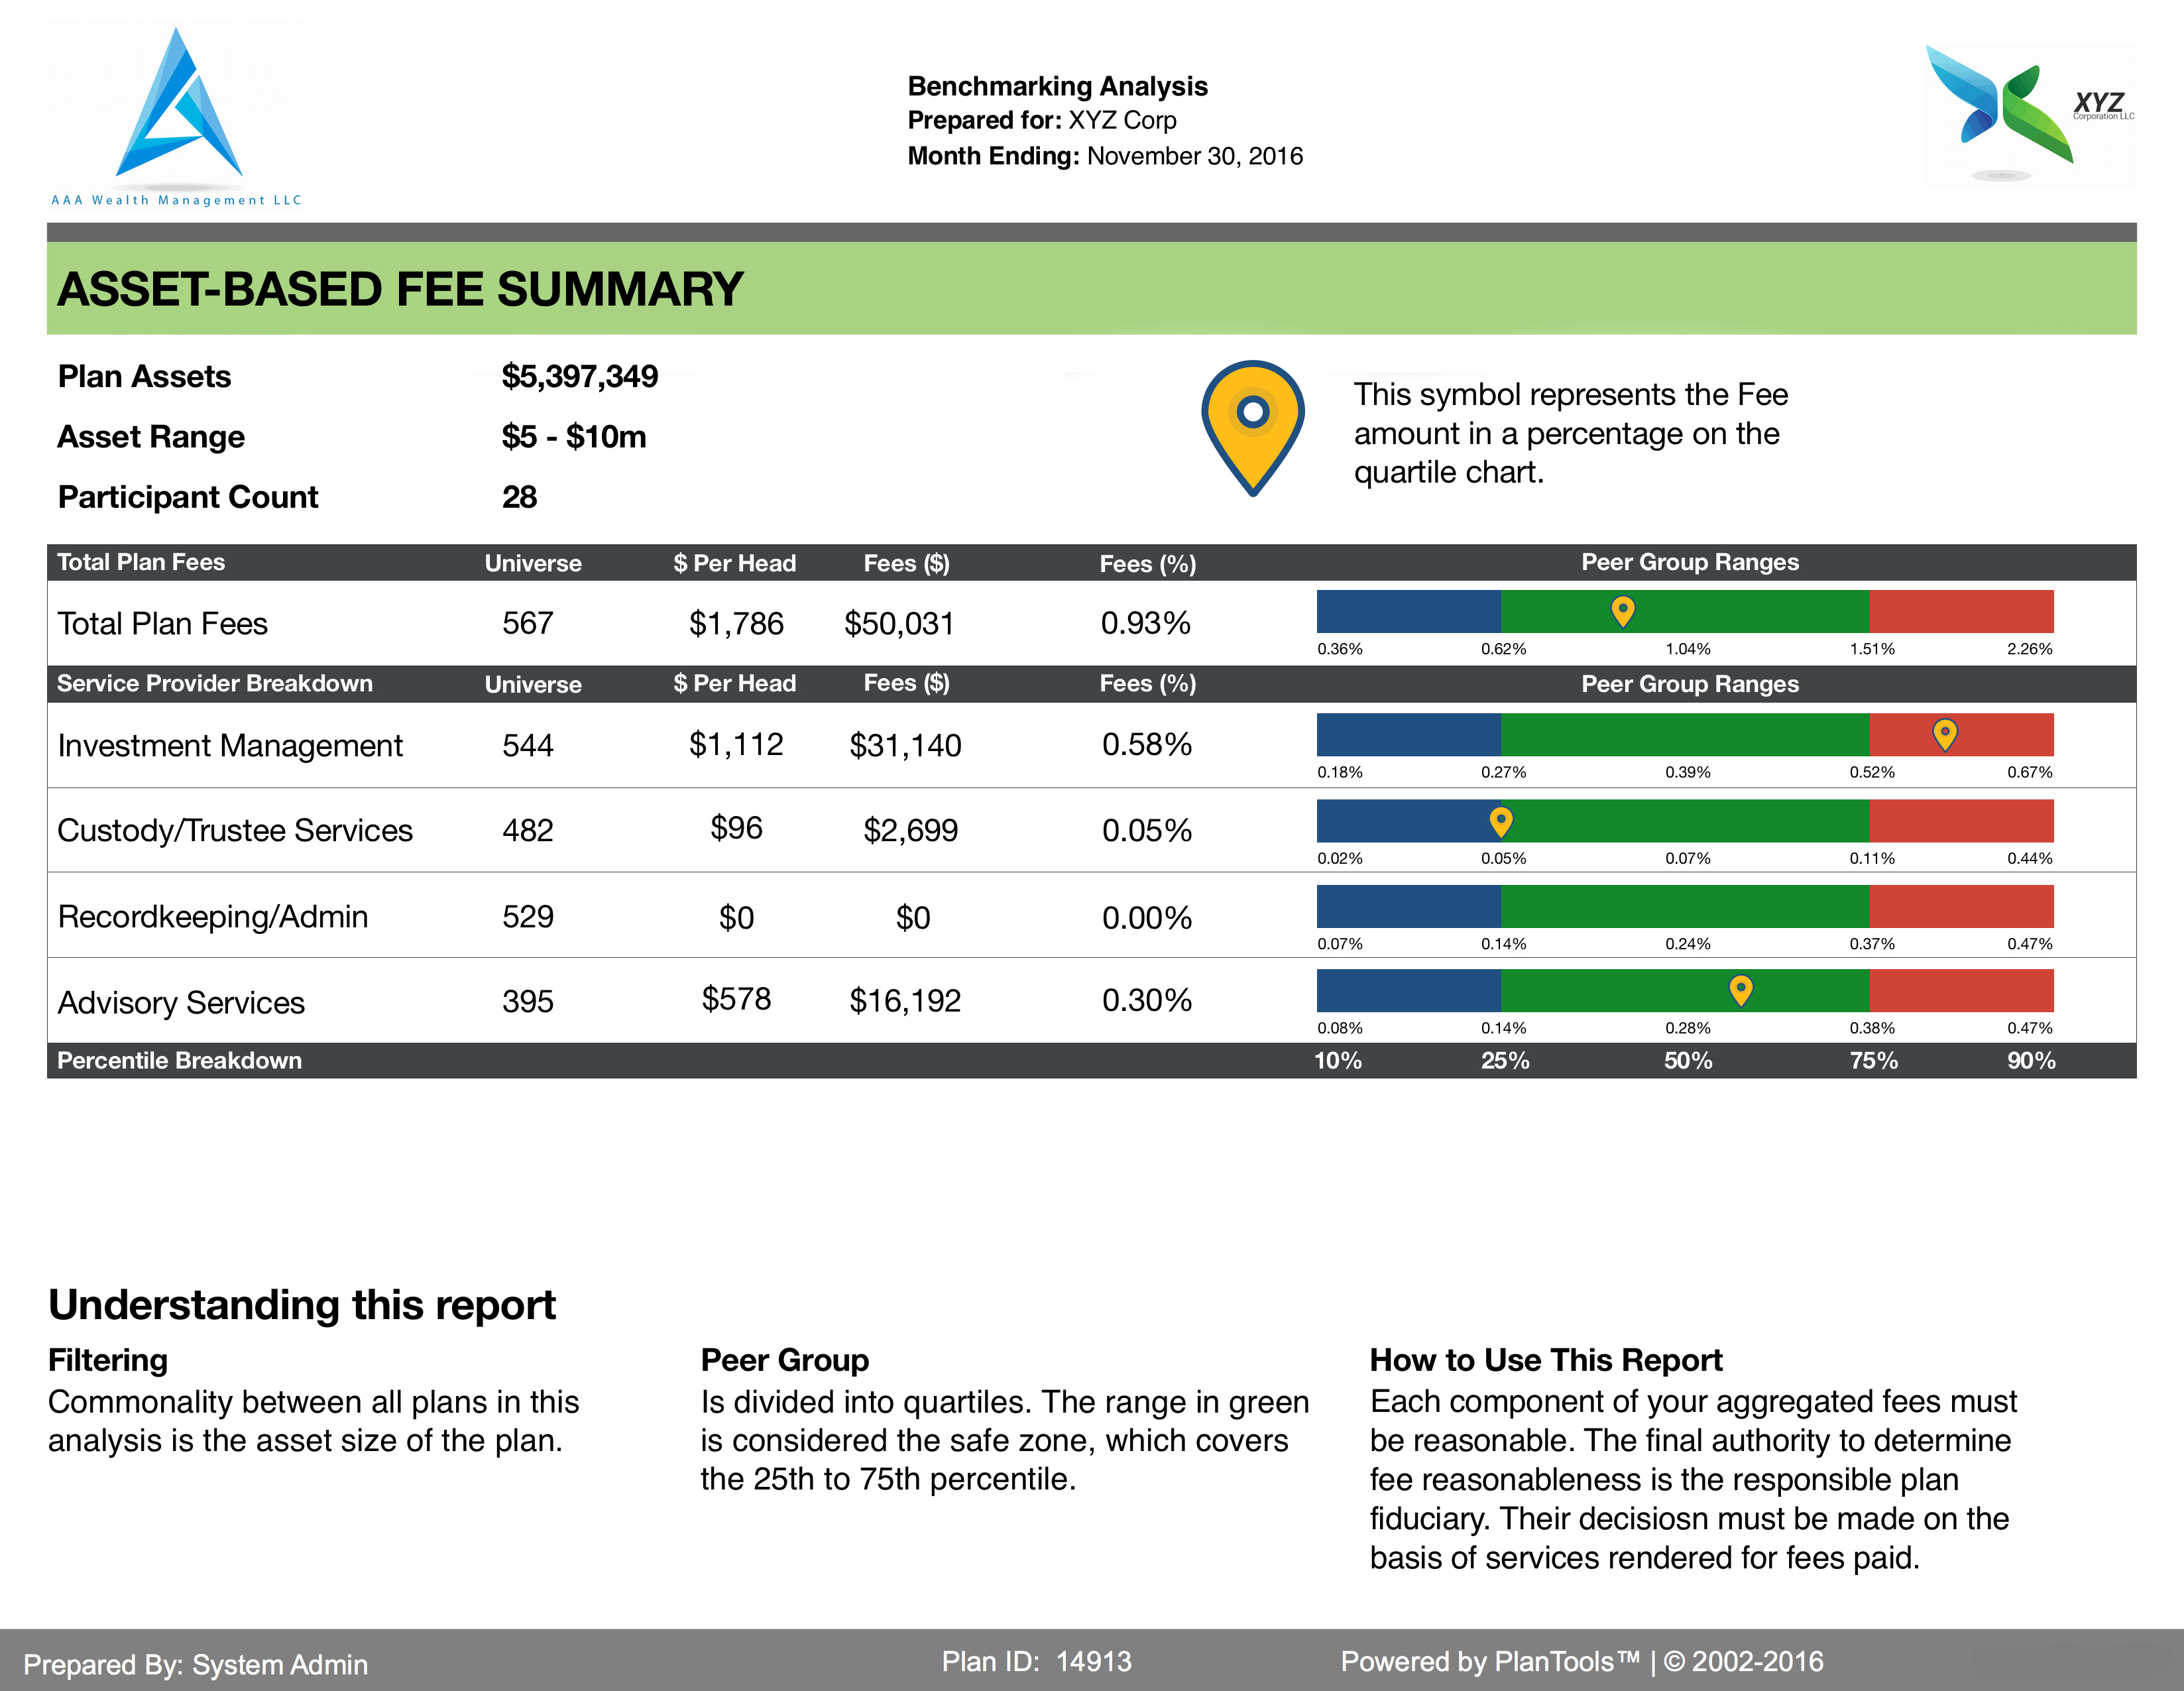 PlanTools Asset Based Fee Summary Benchmarking View